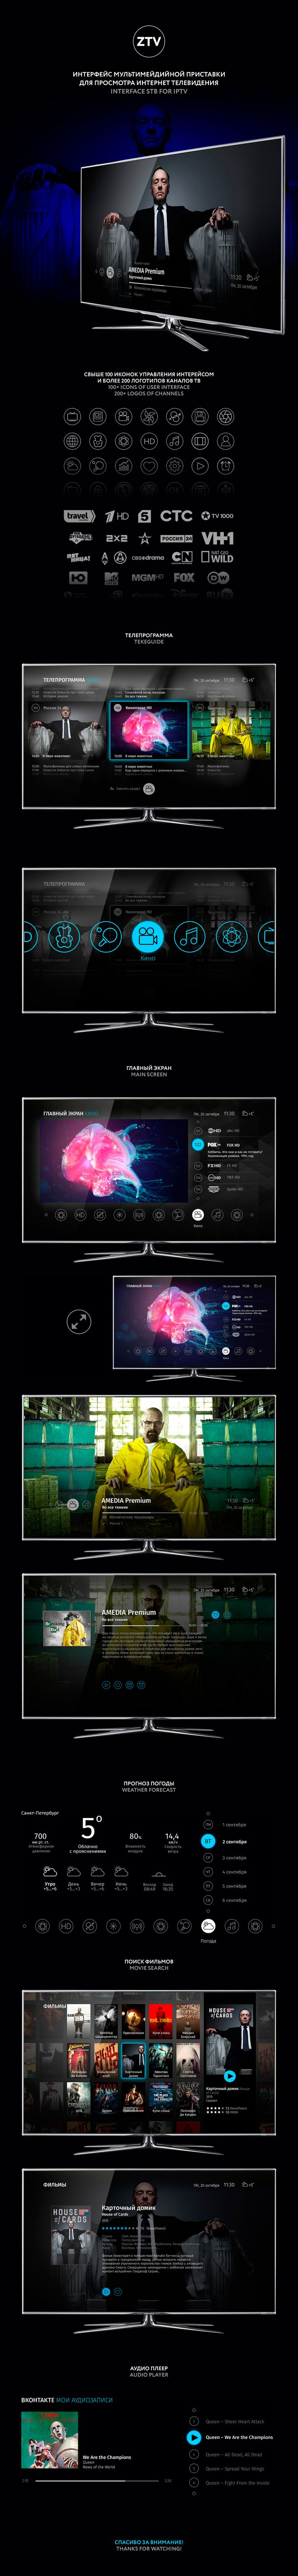 Interface IPTV on Behance